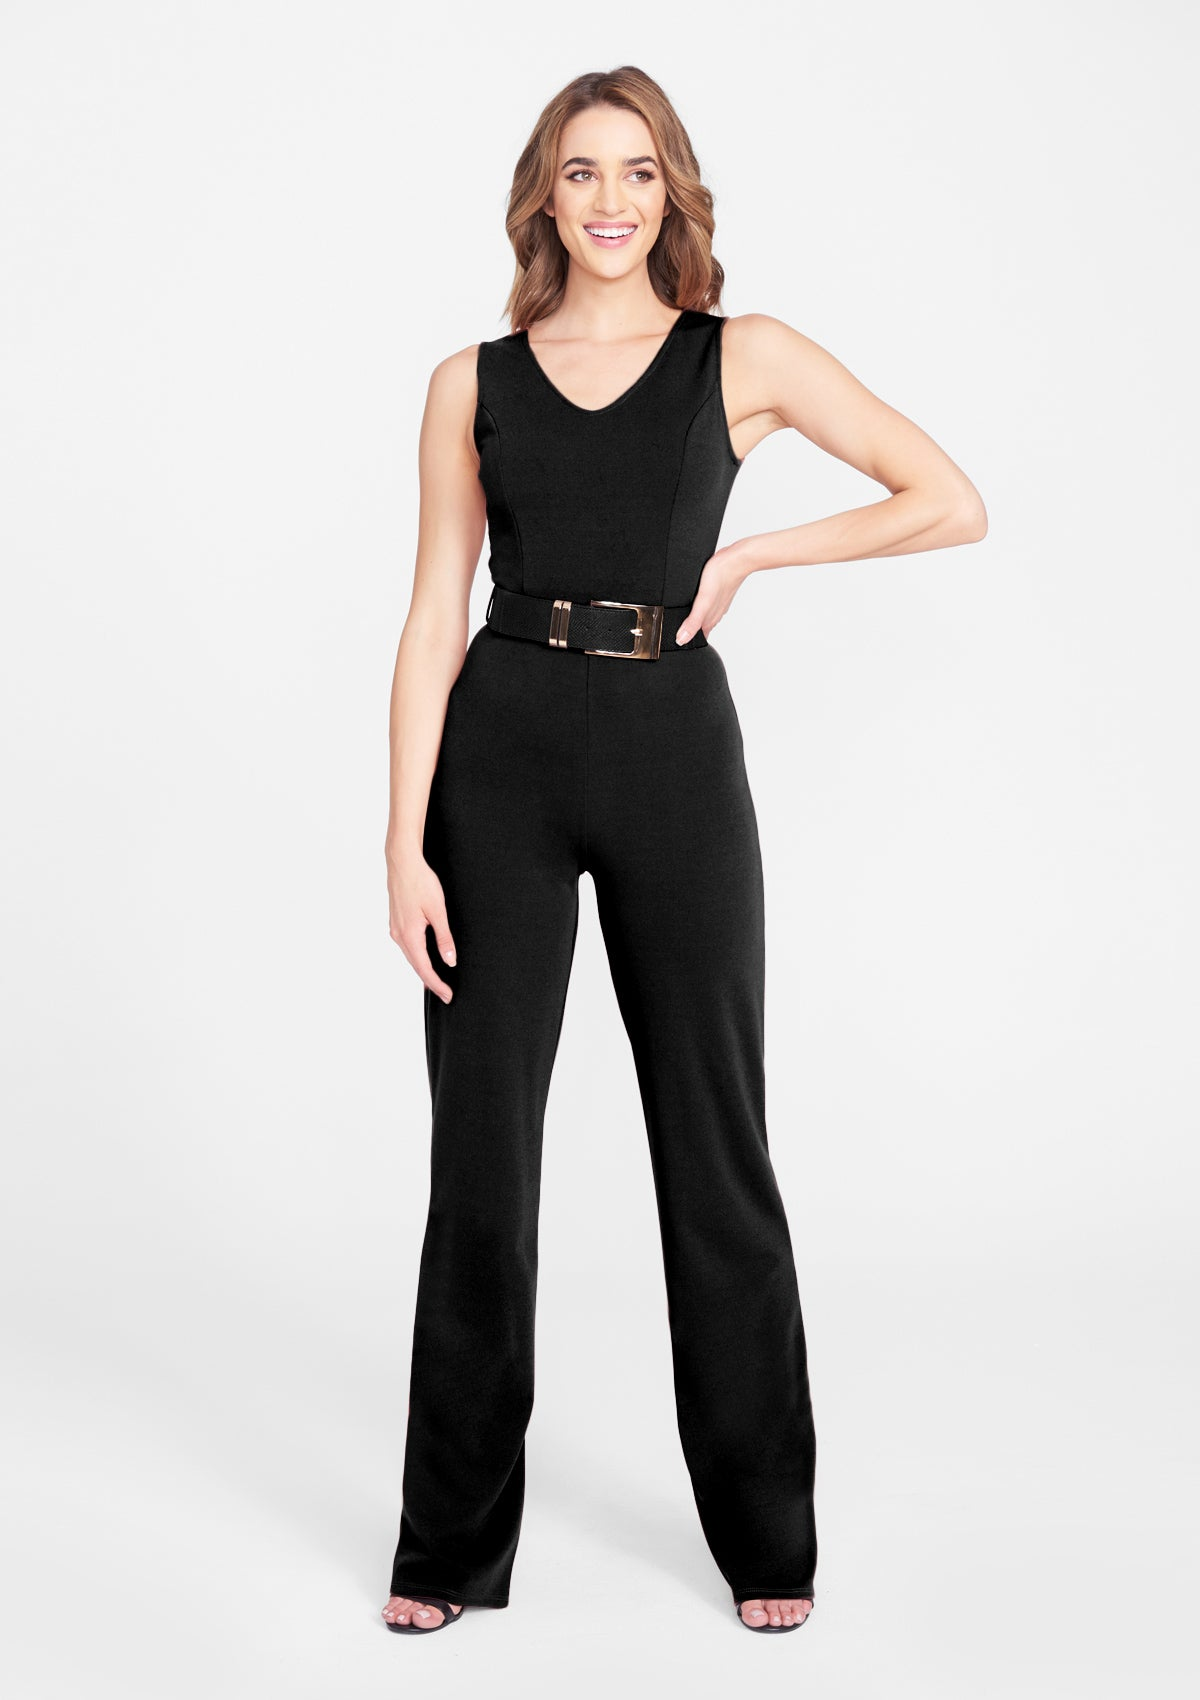 Alloy Apparel Tall Crepe Jumpsuit for Women in Black Size XL   Polyester